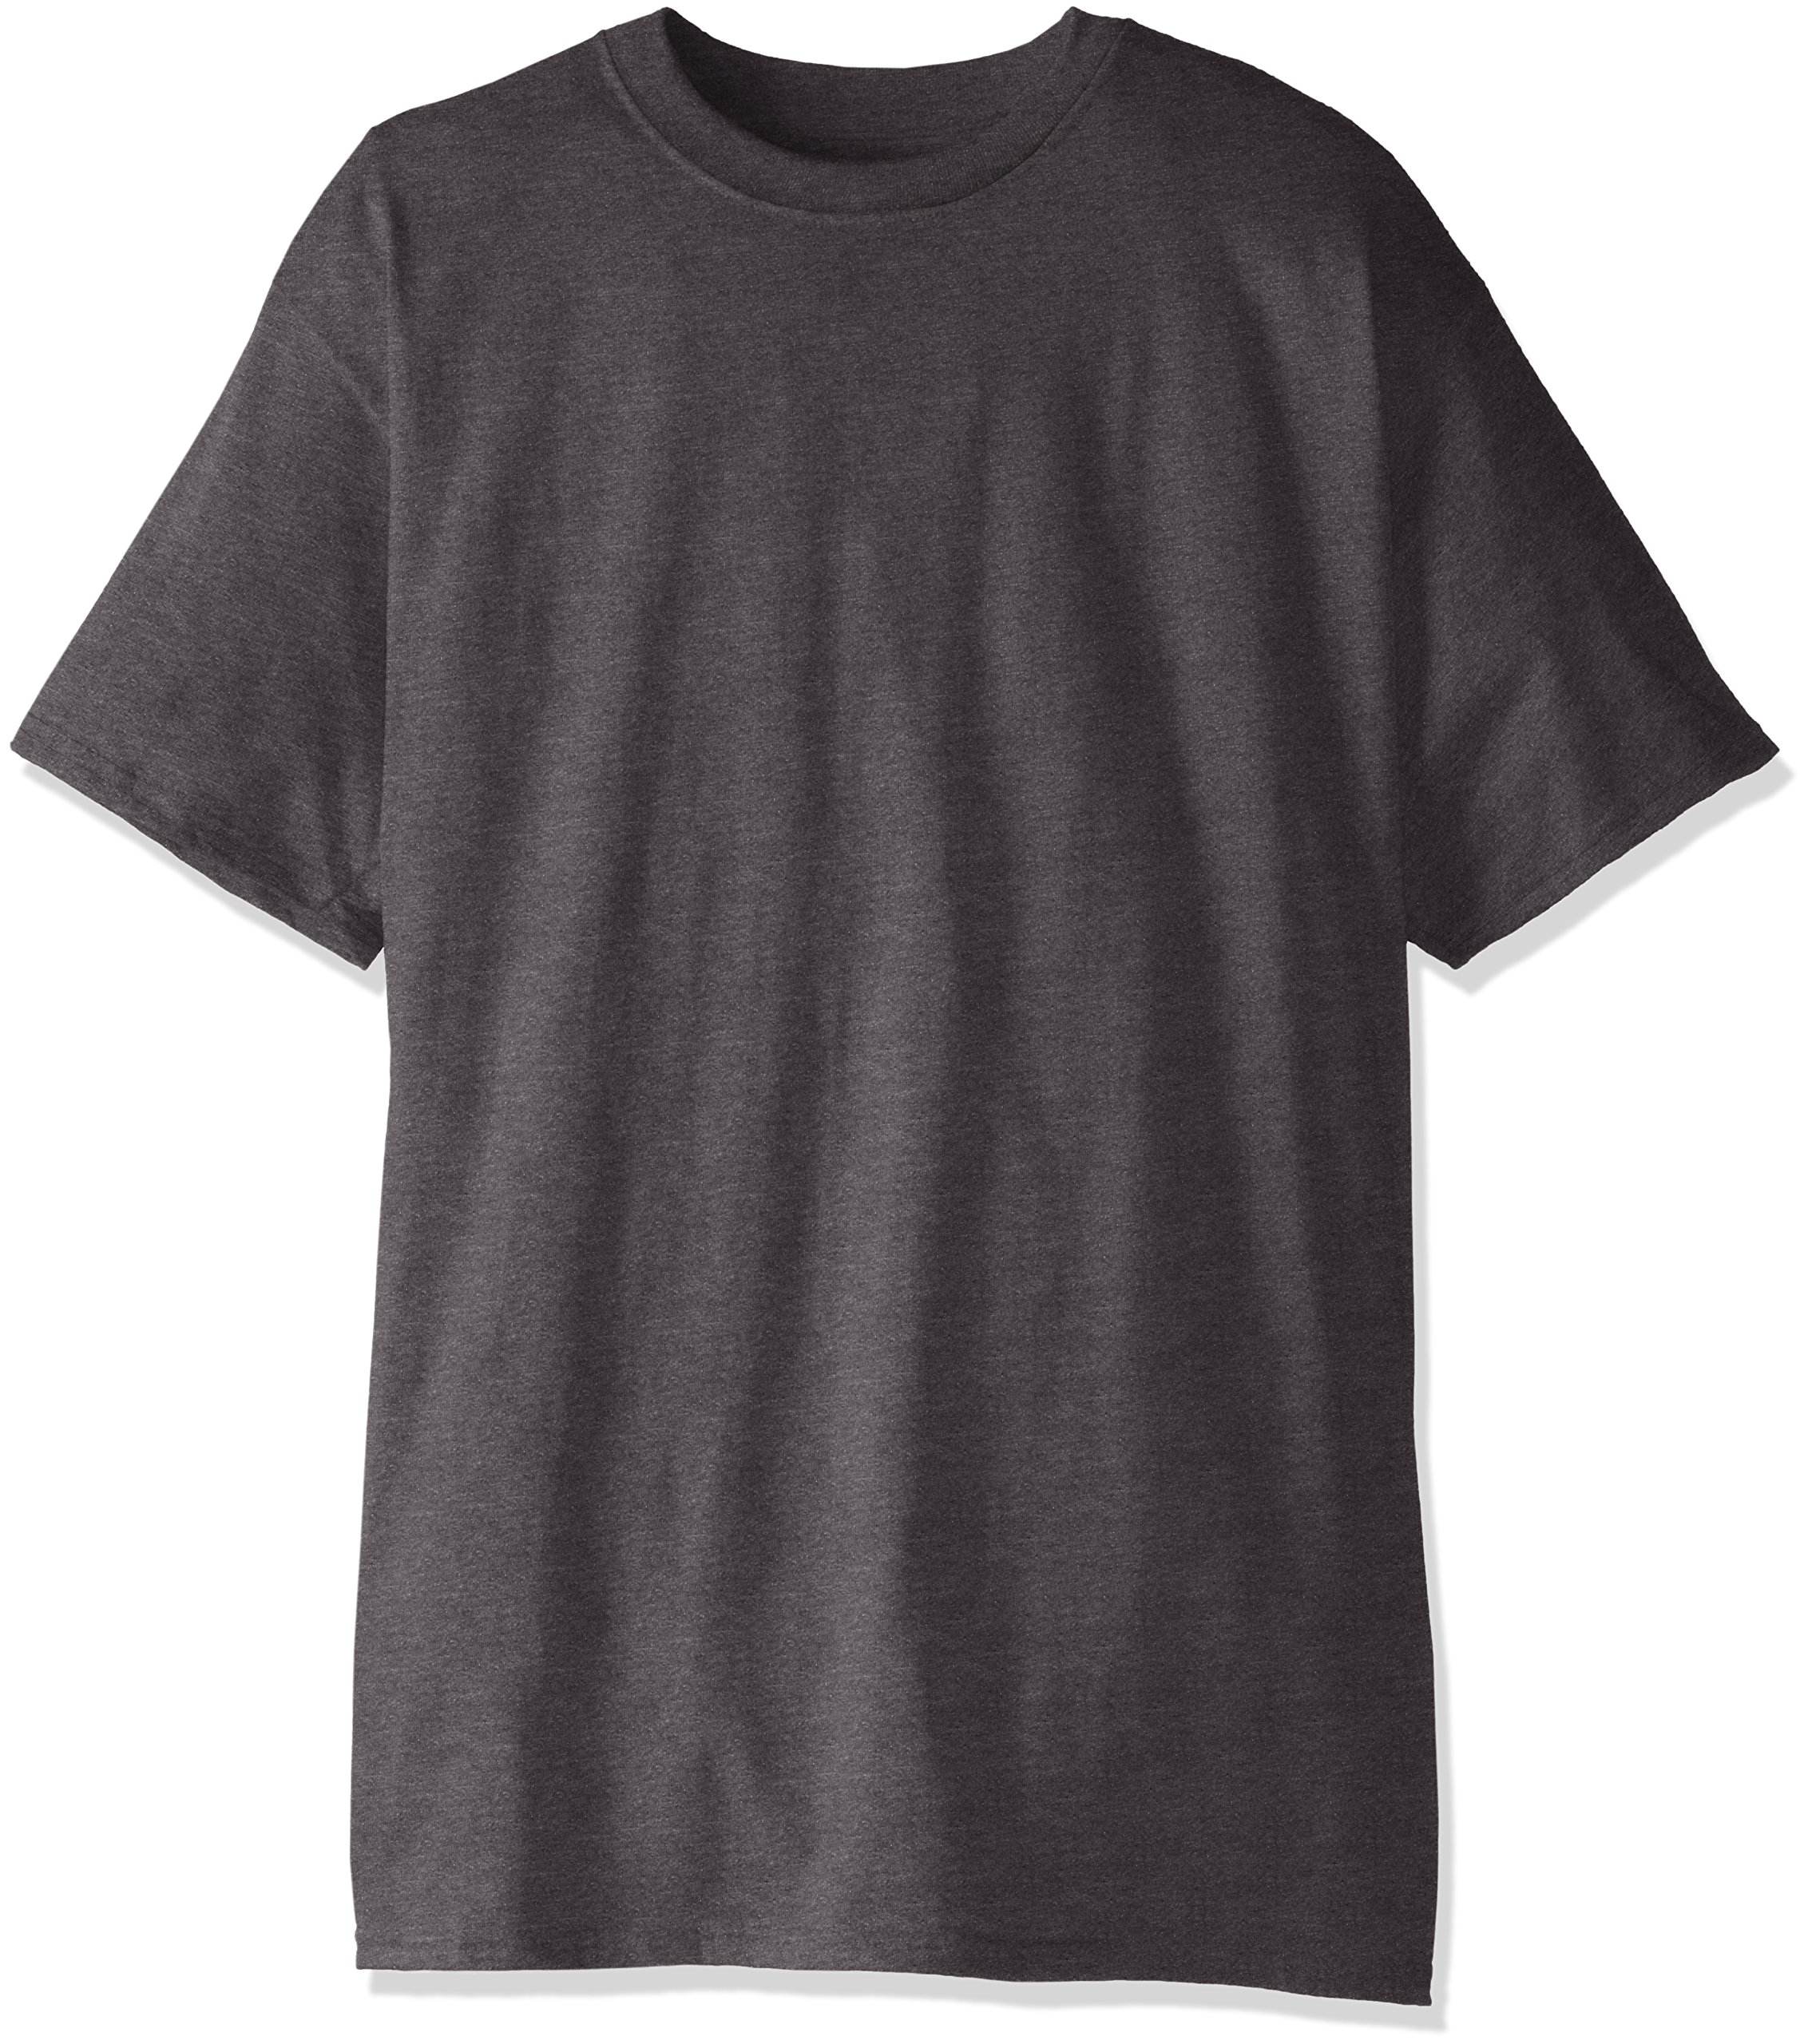 Hanes Men's Big and Tall Short-Sleeve Beefy T-Shirt (Pack of Two), Charcoal Heather, XLT